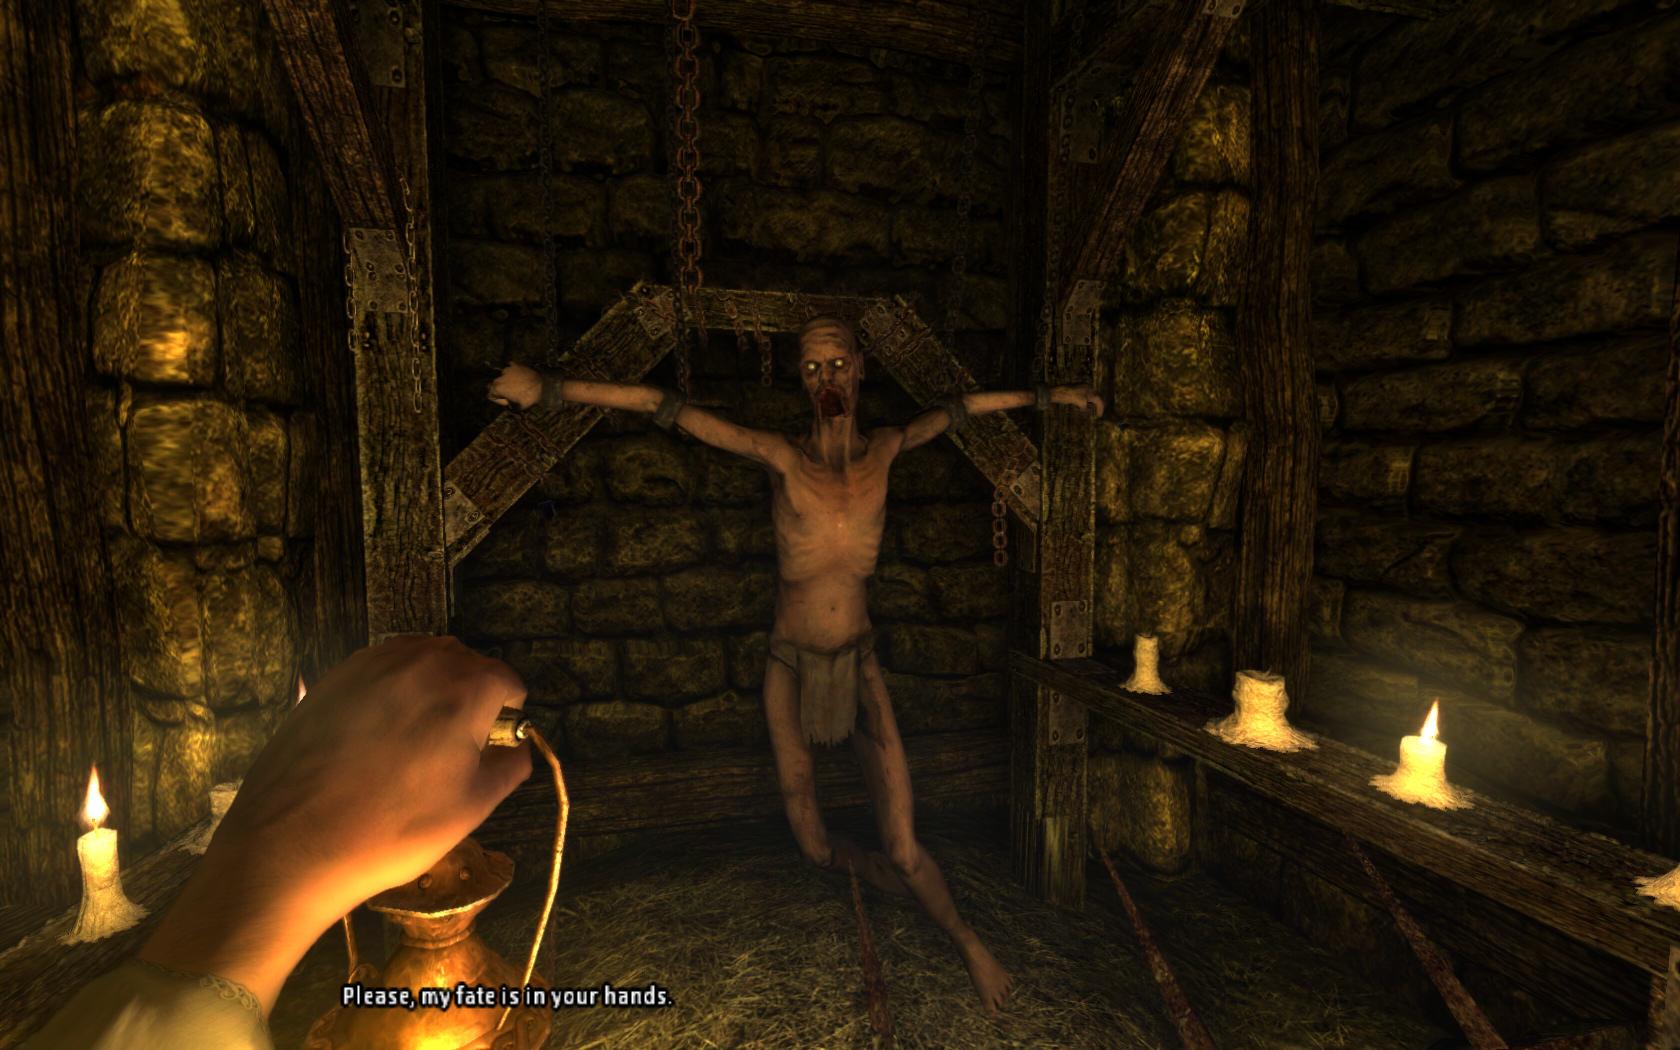 UNILAD amnesiathedarkdescent33153 Ten Of The Most Terrifying Games To Play This Halloween